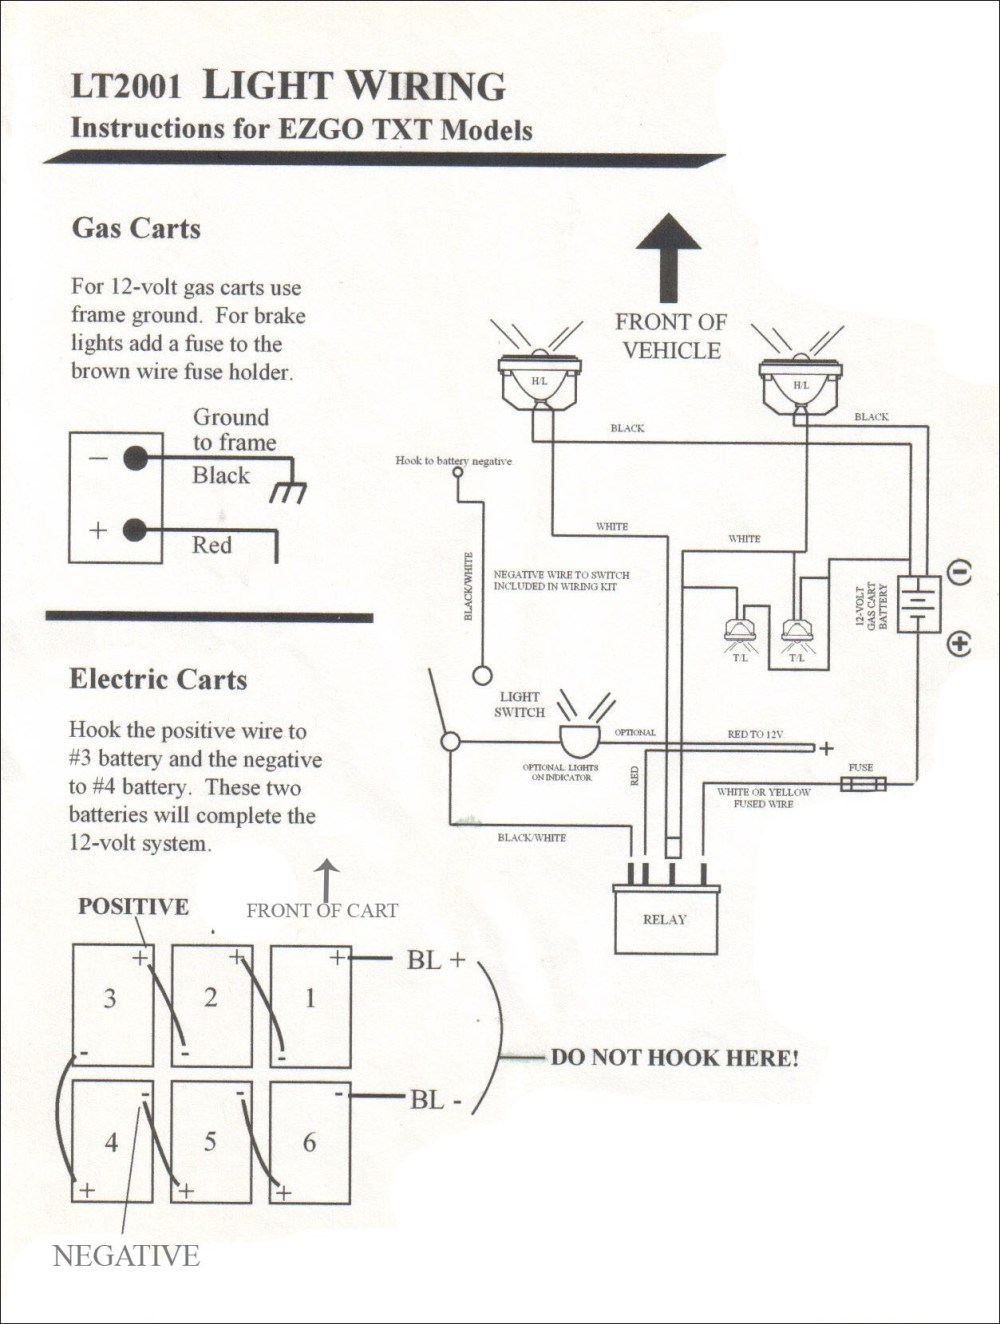 Mpt 1000 Wiring Diagram - figure 3 15 from one way and two ... Gas Wiring Golf Diagram Cart Enginempt Ezgo on